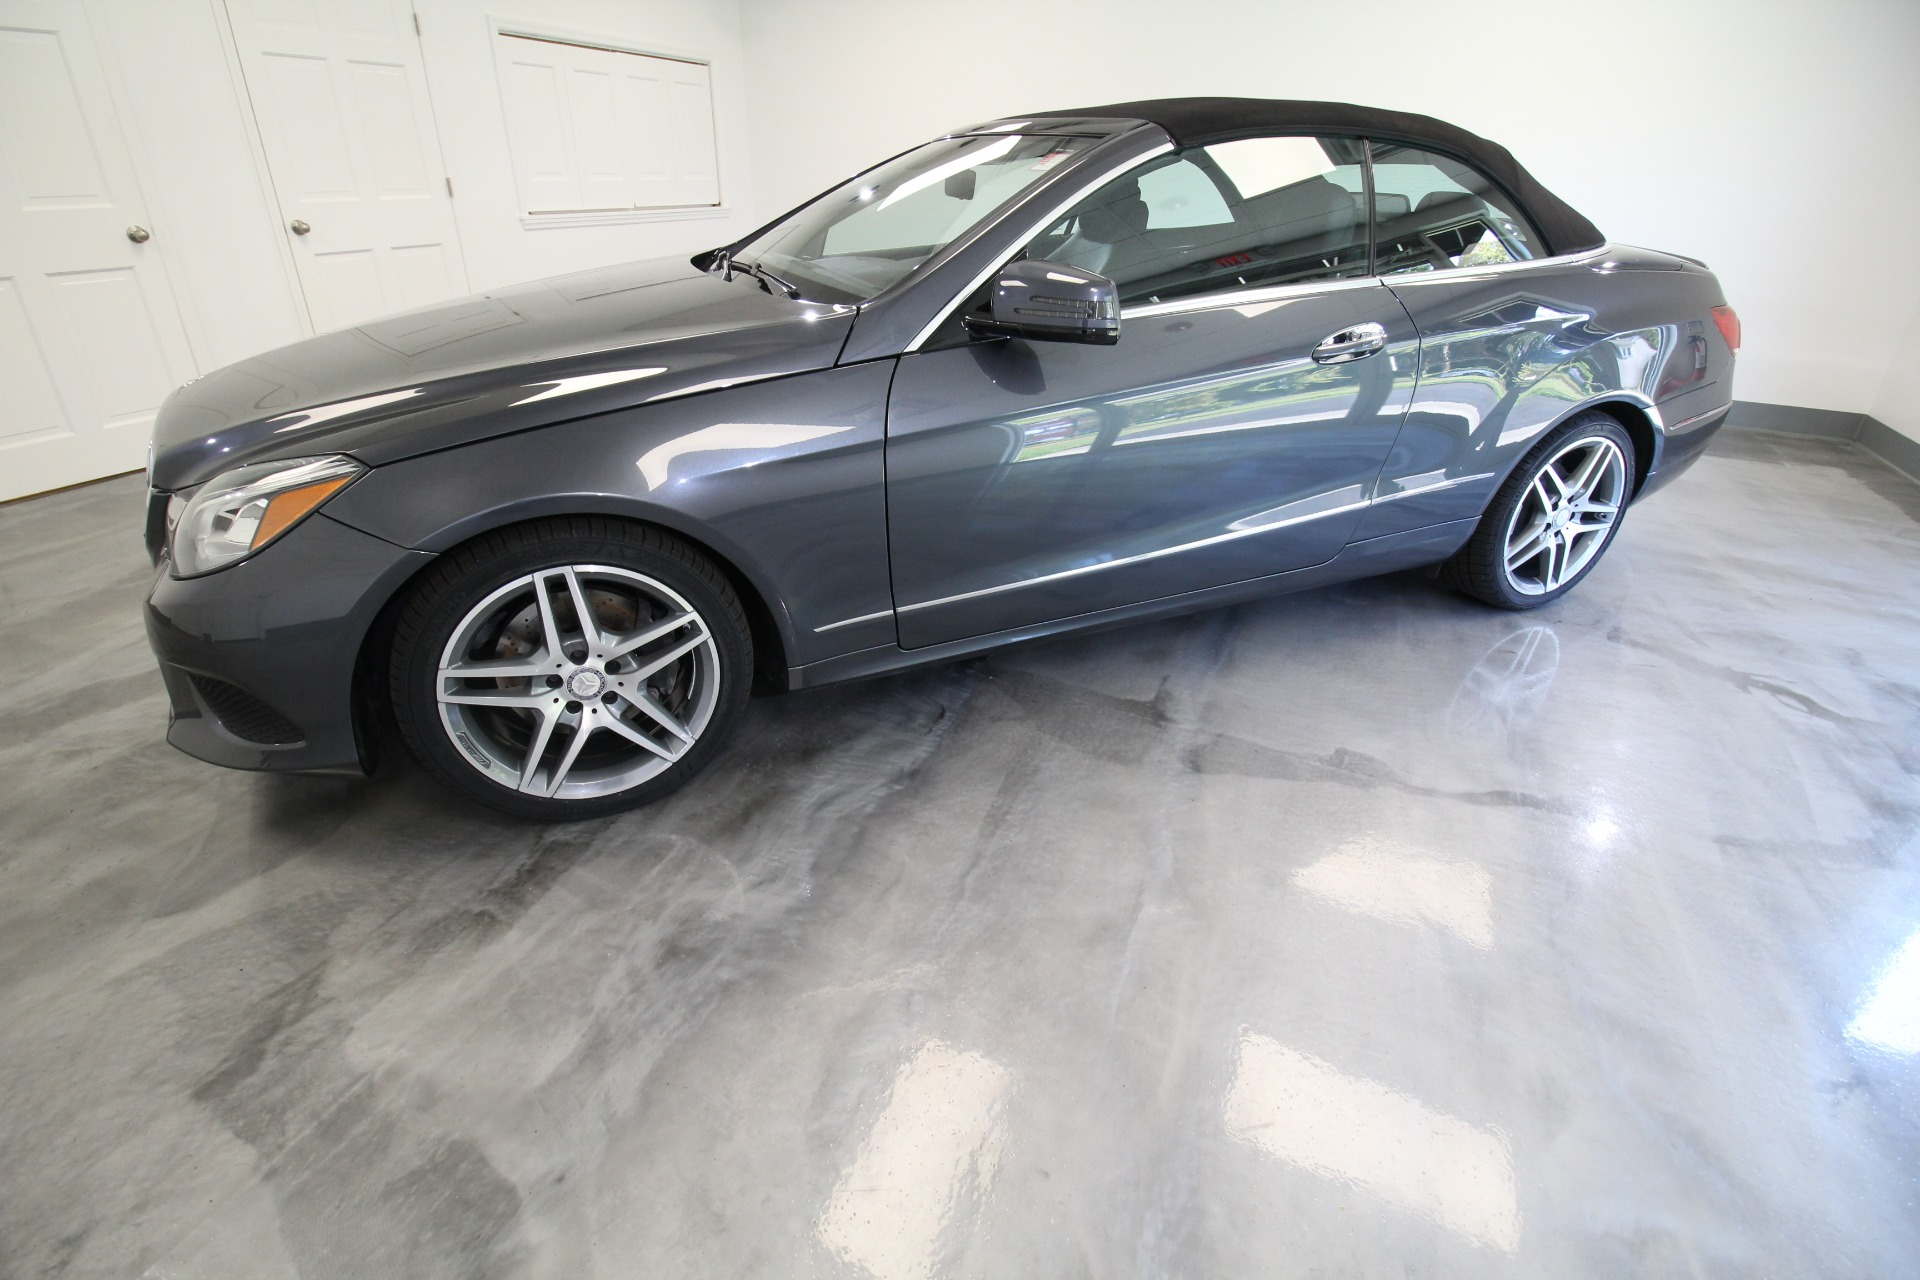 Used 2014 Mercedes-Benz E-Class E350 Cabriolet SUPERB CONDITION AMG SPORT PACKAGE | Albany, NY